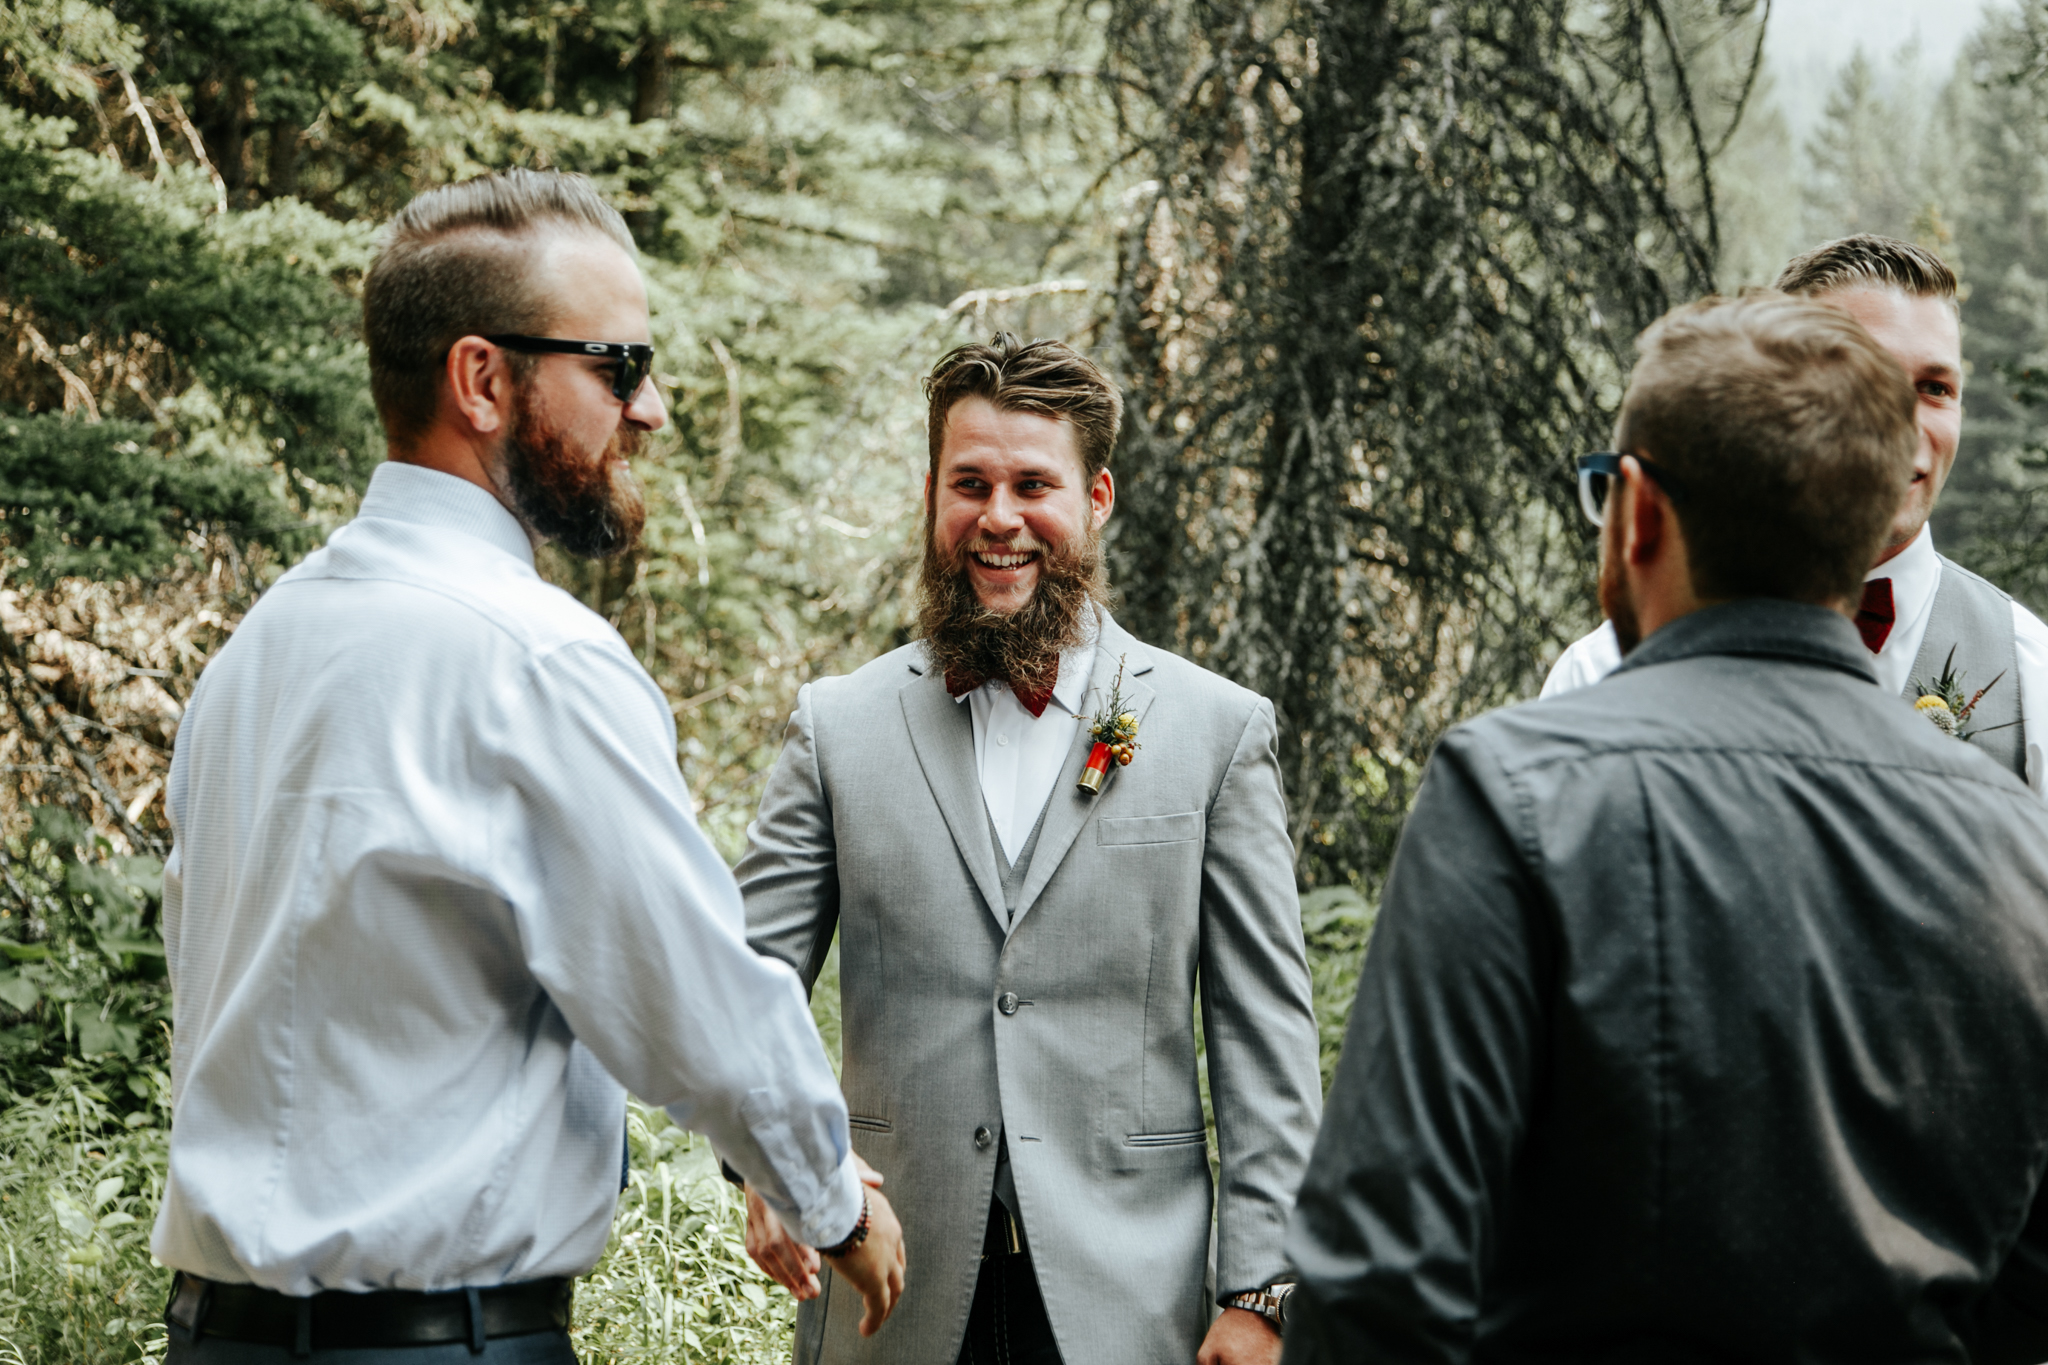 castle-mountain-wedding-photographer-love-and-be-loved-photography-lethbridge-pincher-creek-crowsnest-pass-yannick-rylee-photo-image-picture-58.jpg